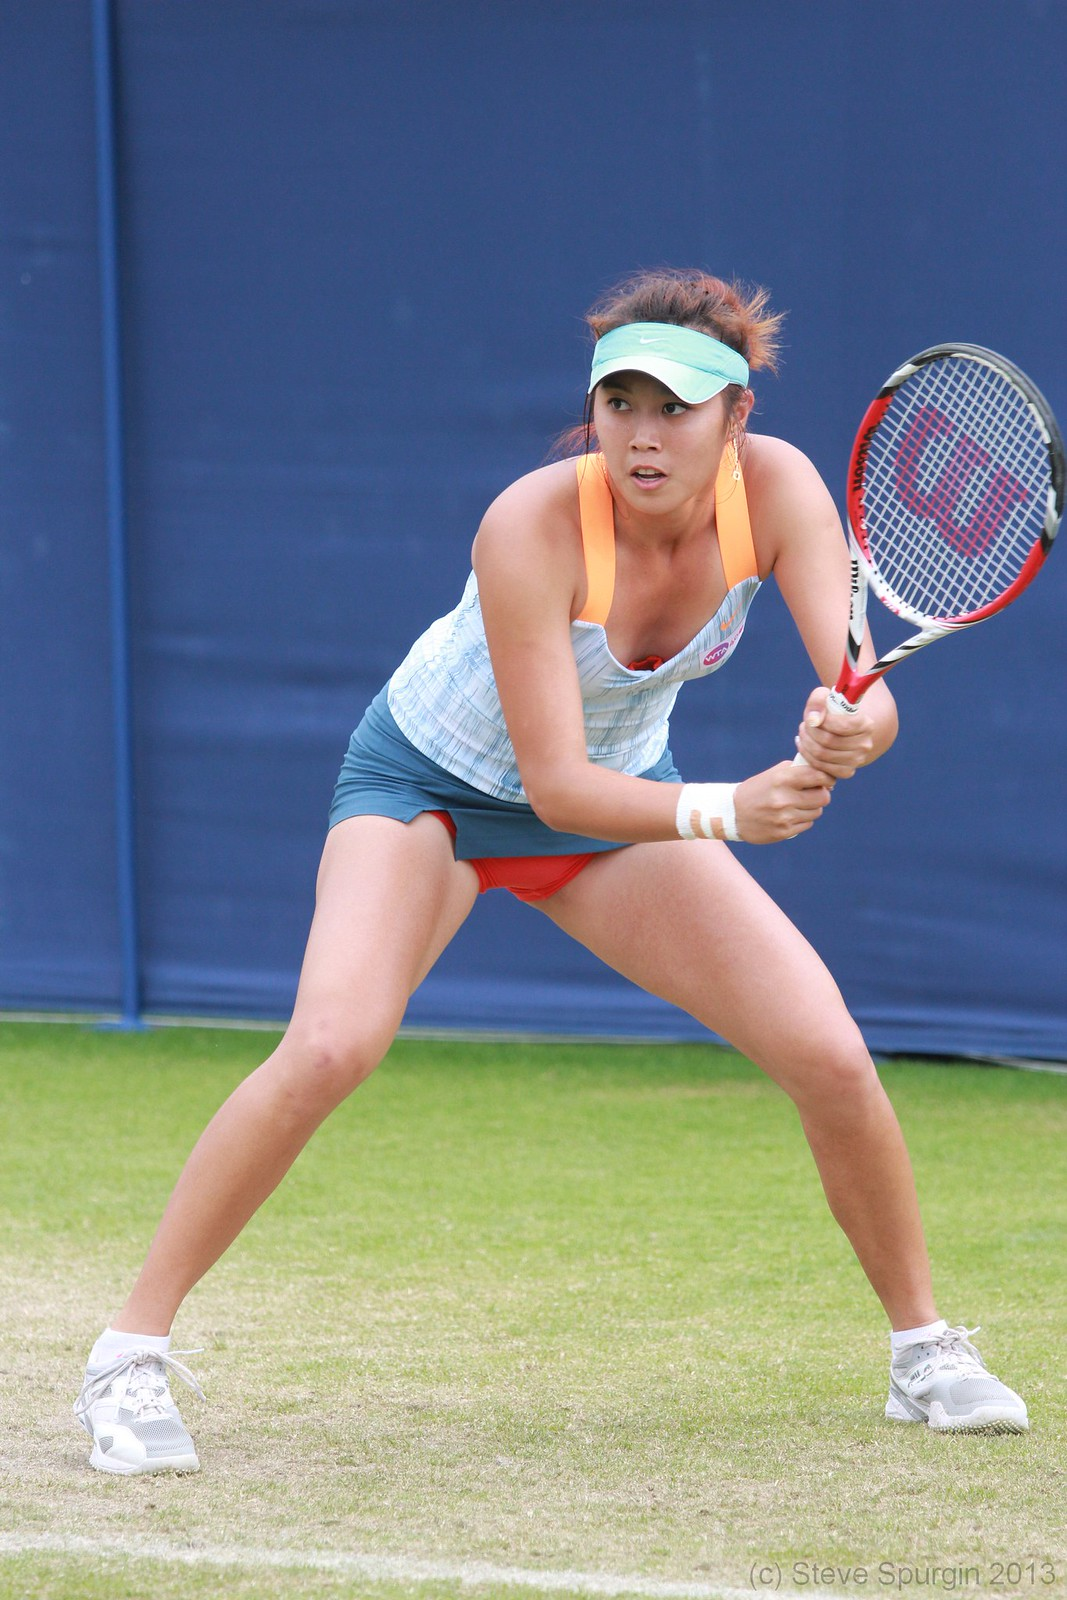 Jelena Jankovic Cameltoe Amazing guys only: best legs and other best female issues   page 866